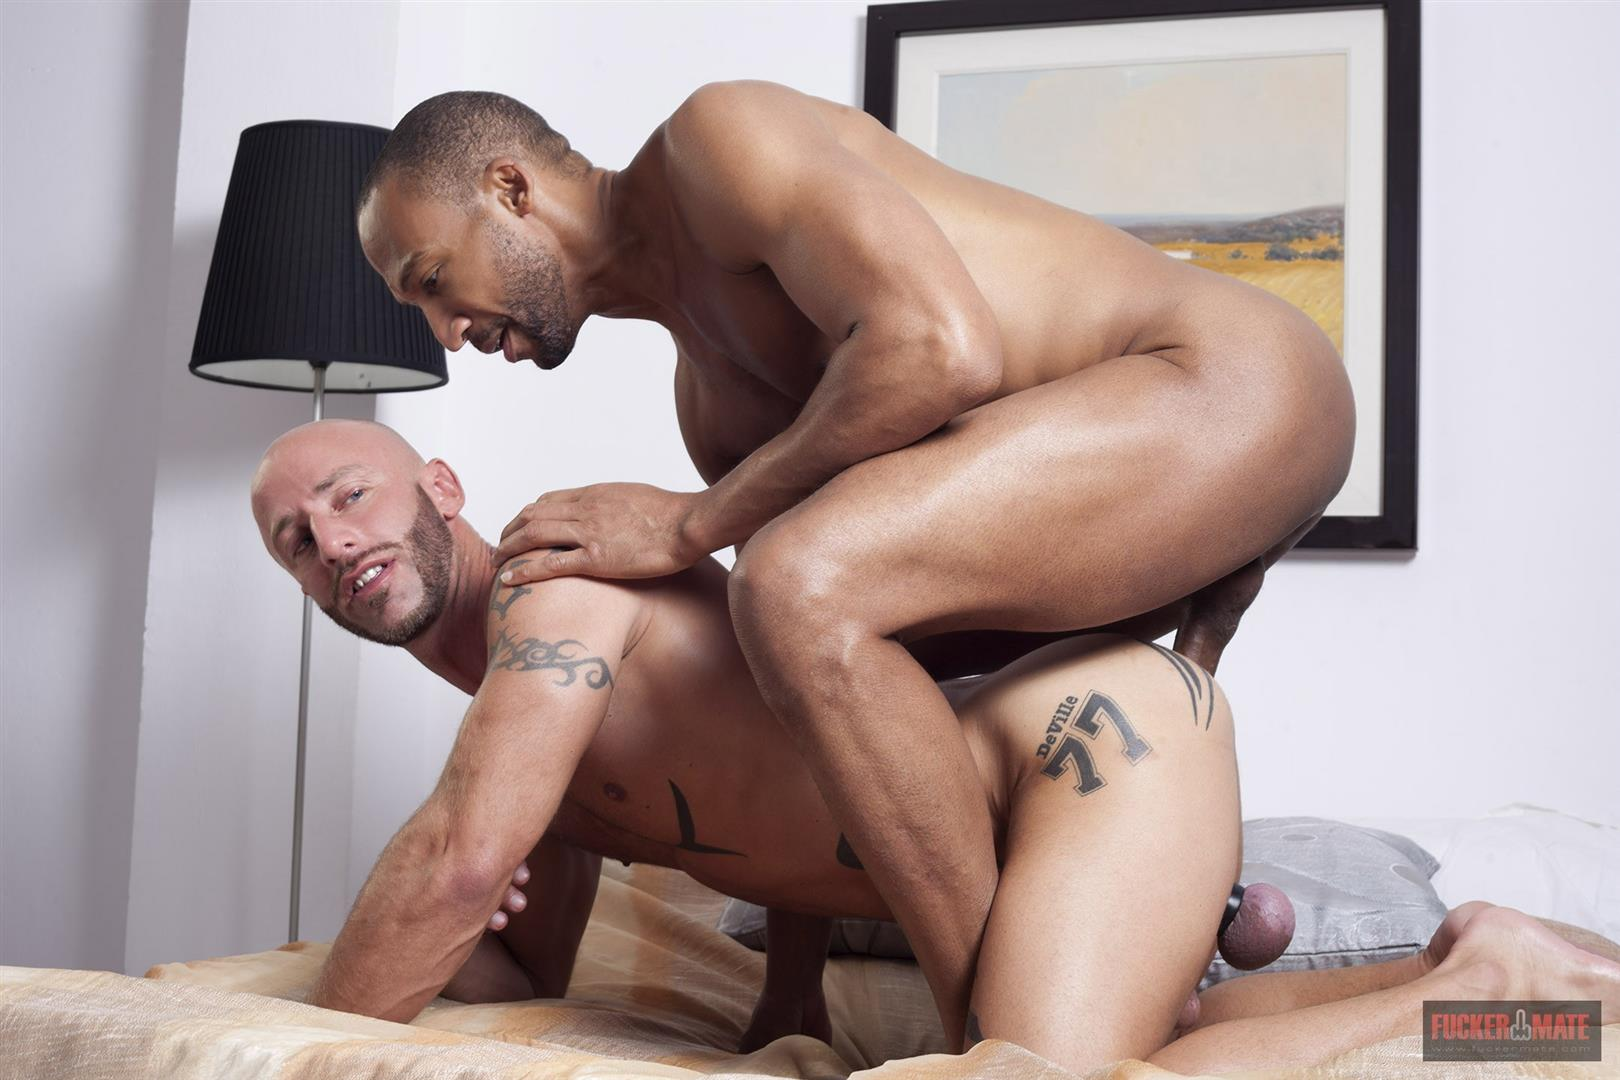 interracial sex gay First